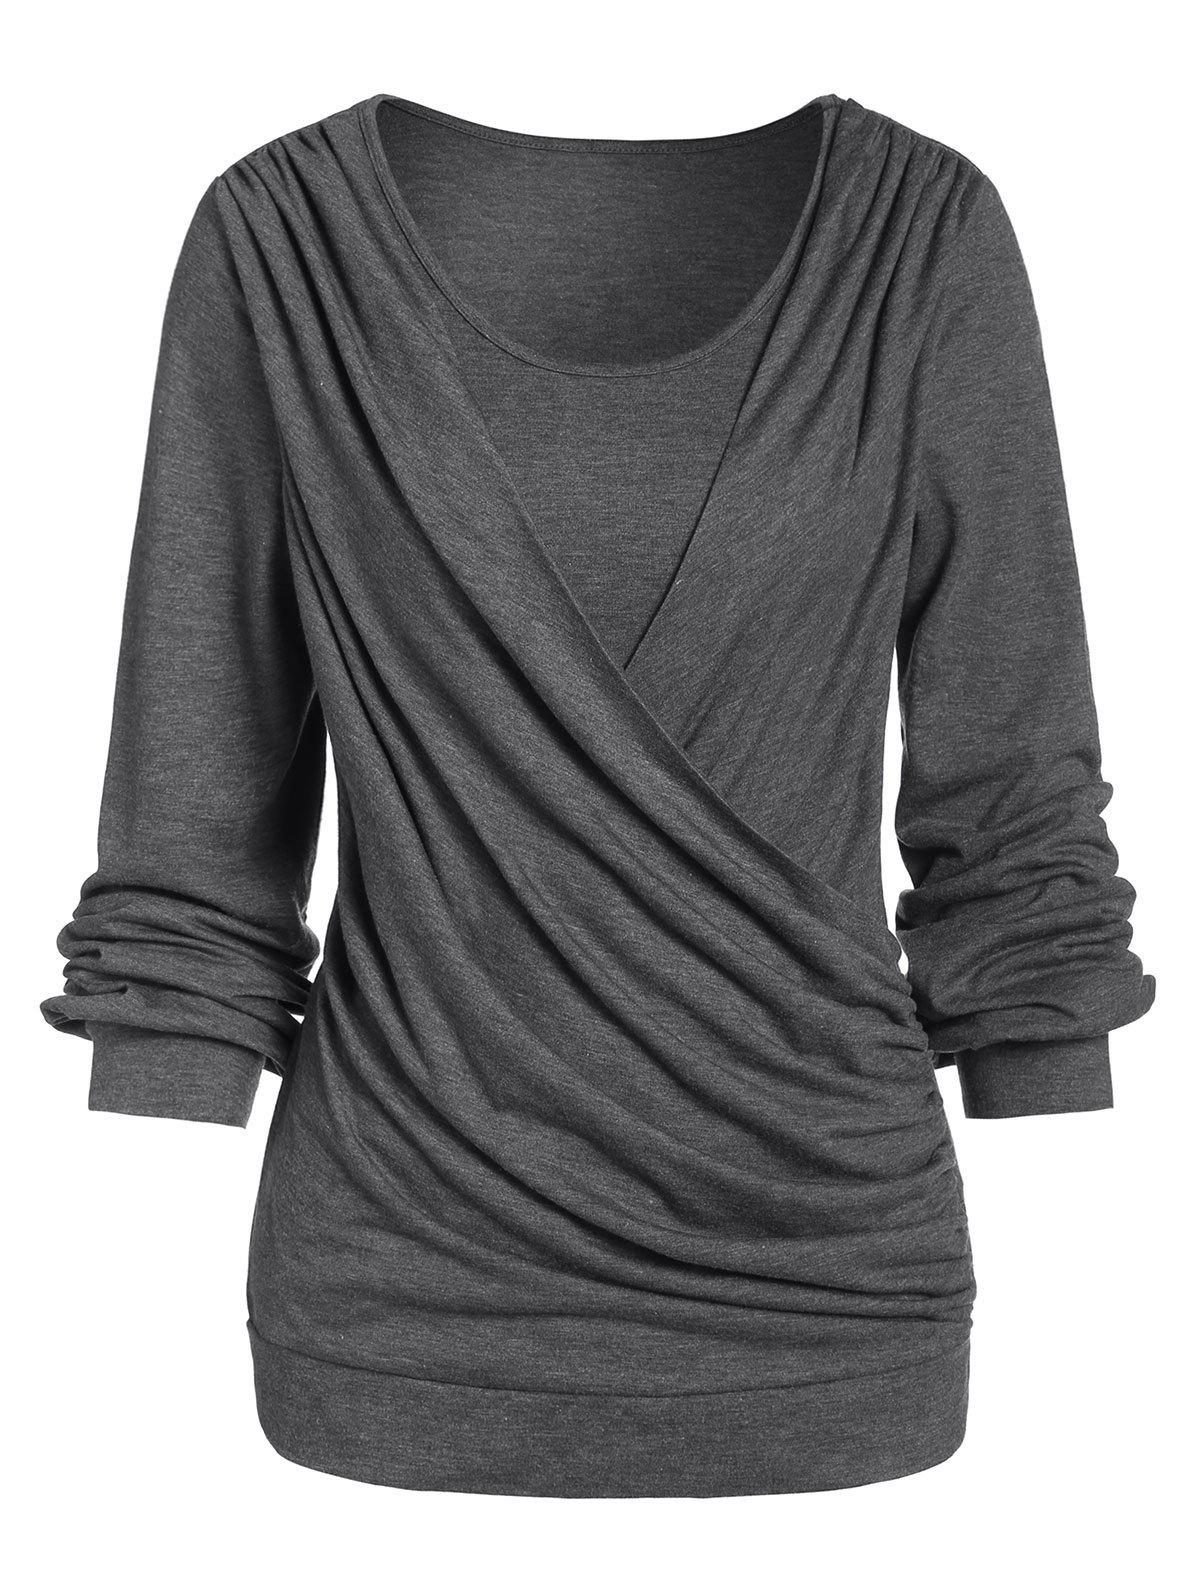 Cheap Space Dye Round Collar Long Sleeve T Shirt